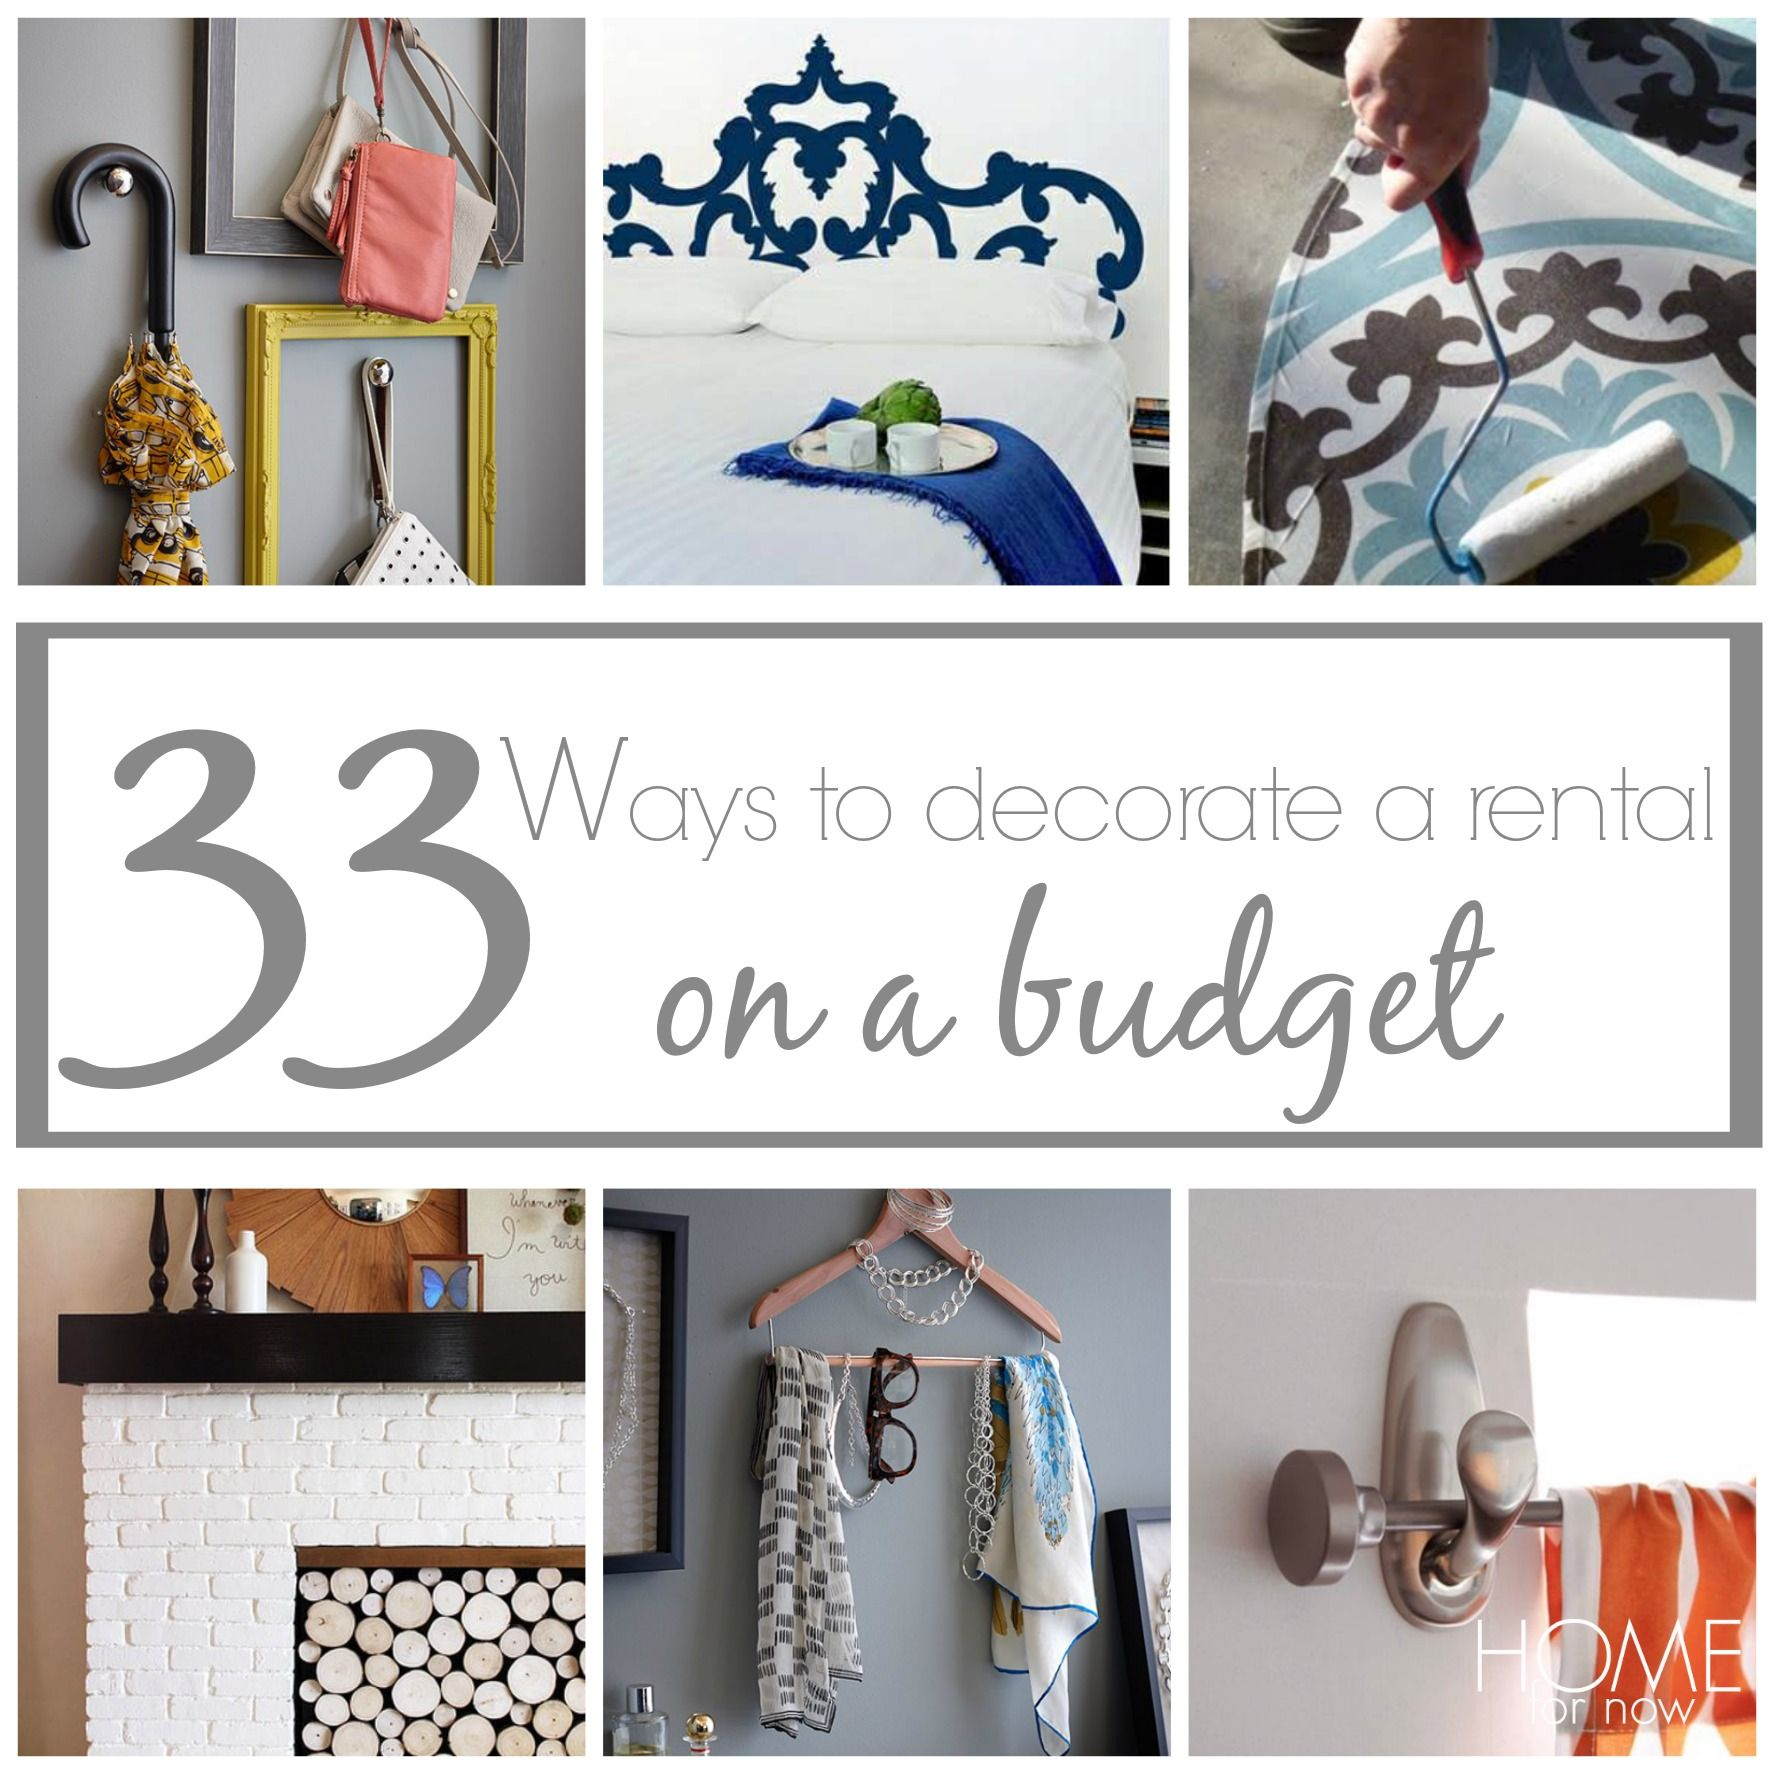 Marvelous 33 Ways To Decorate A Rental On A Budget